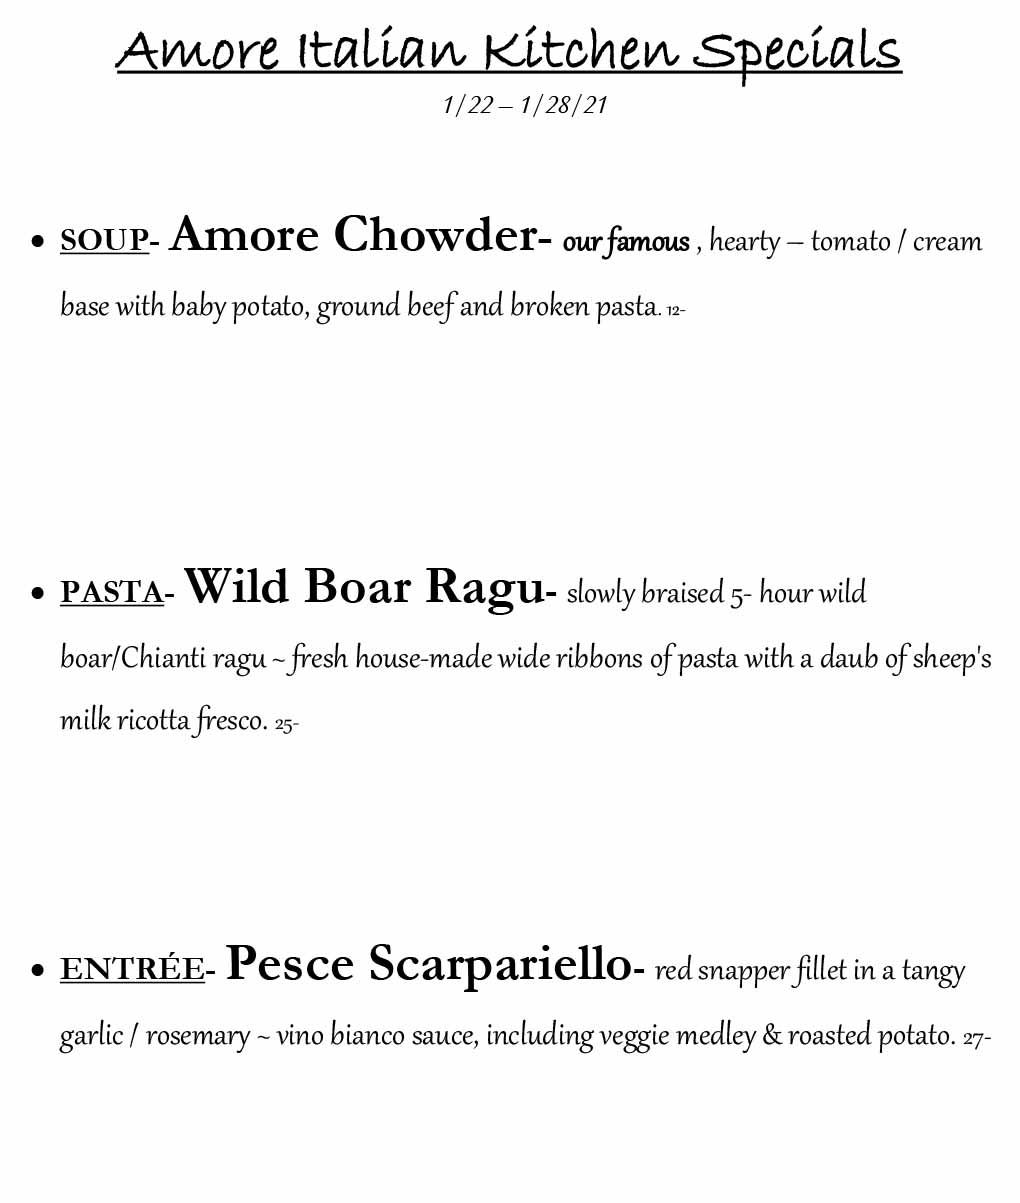 Weekly specials from 1/22-1/28